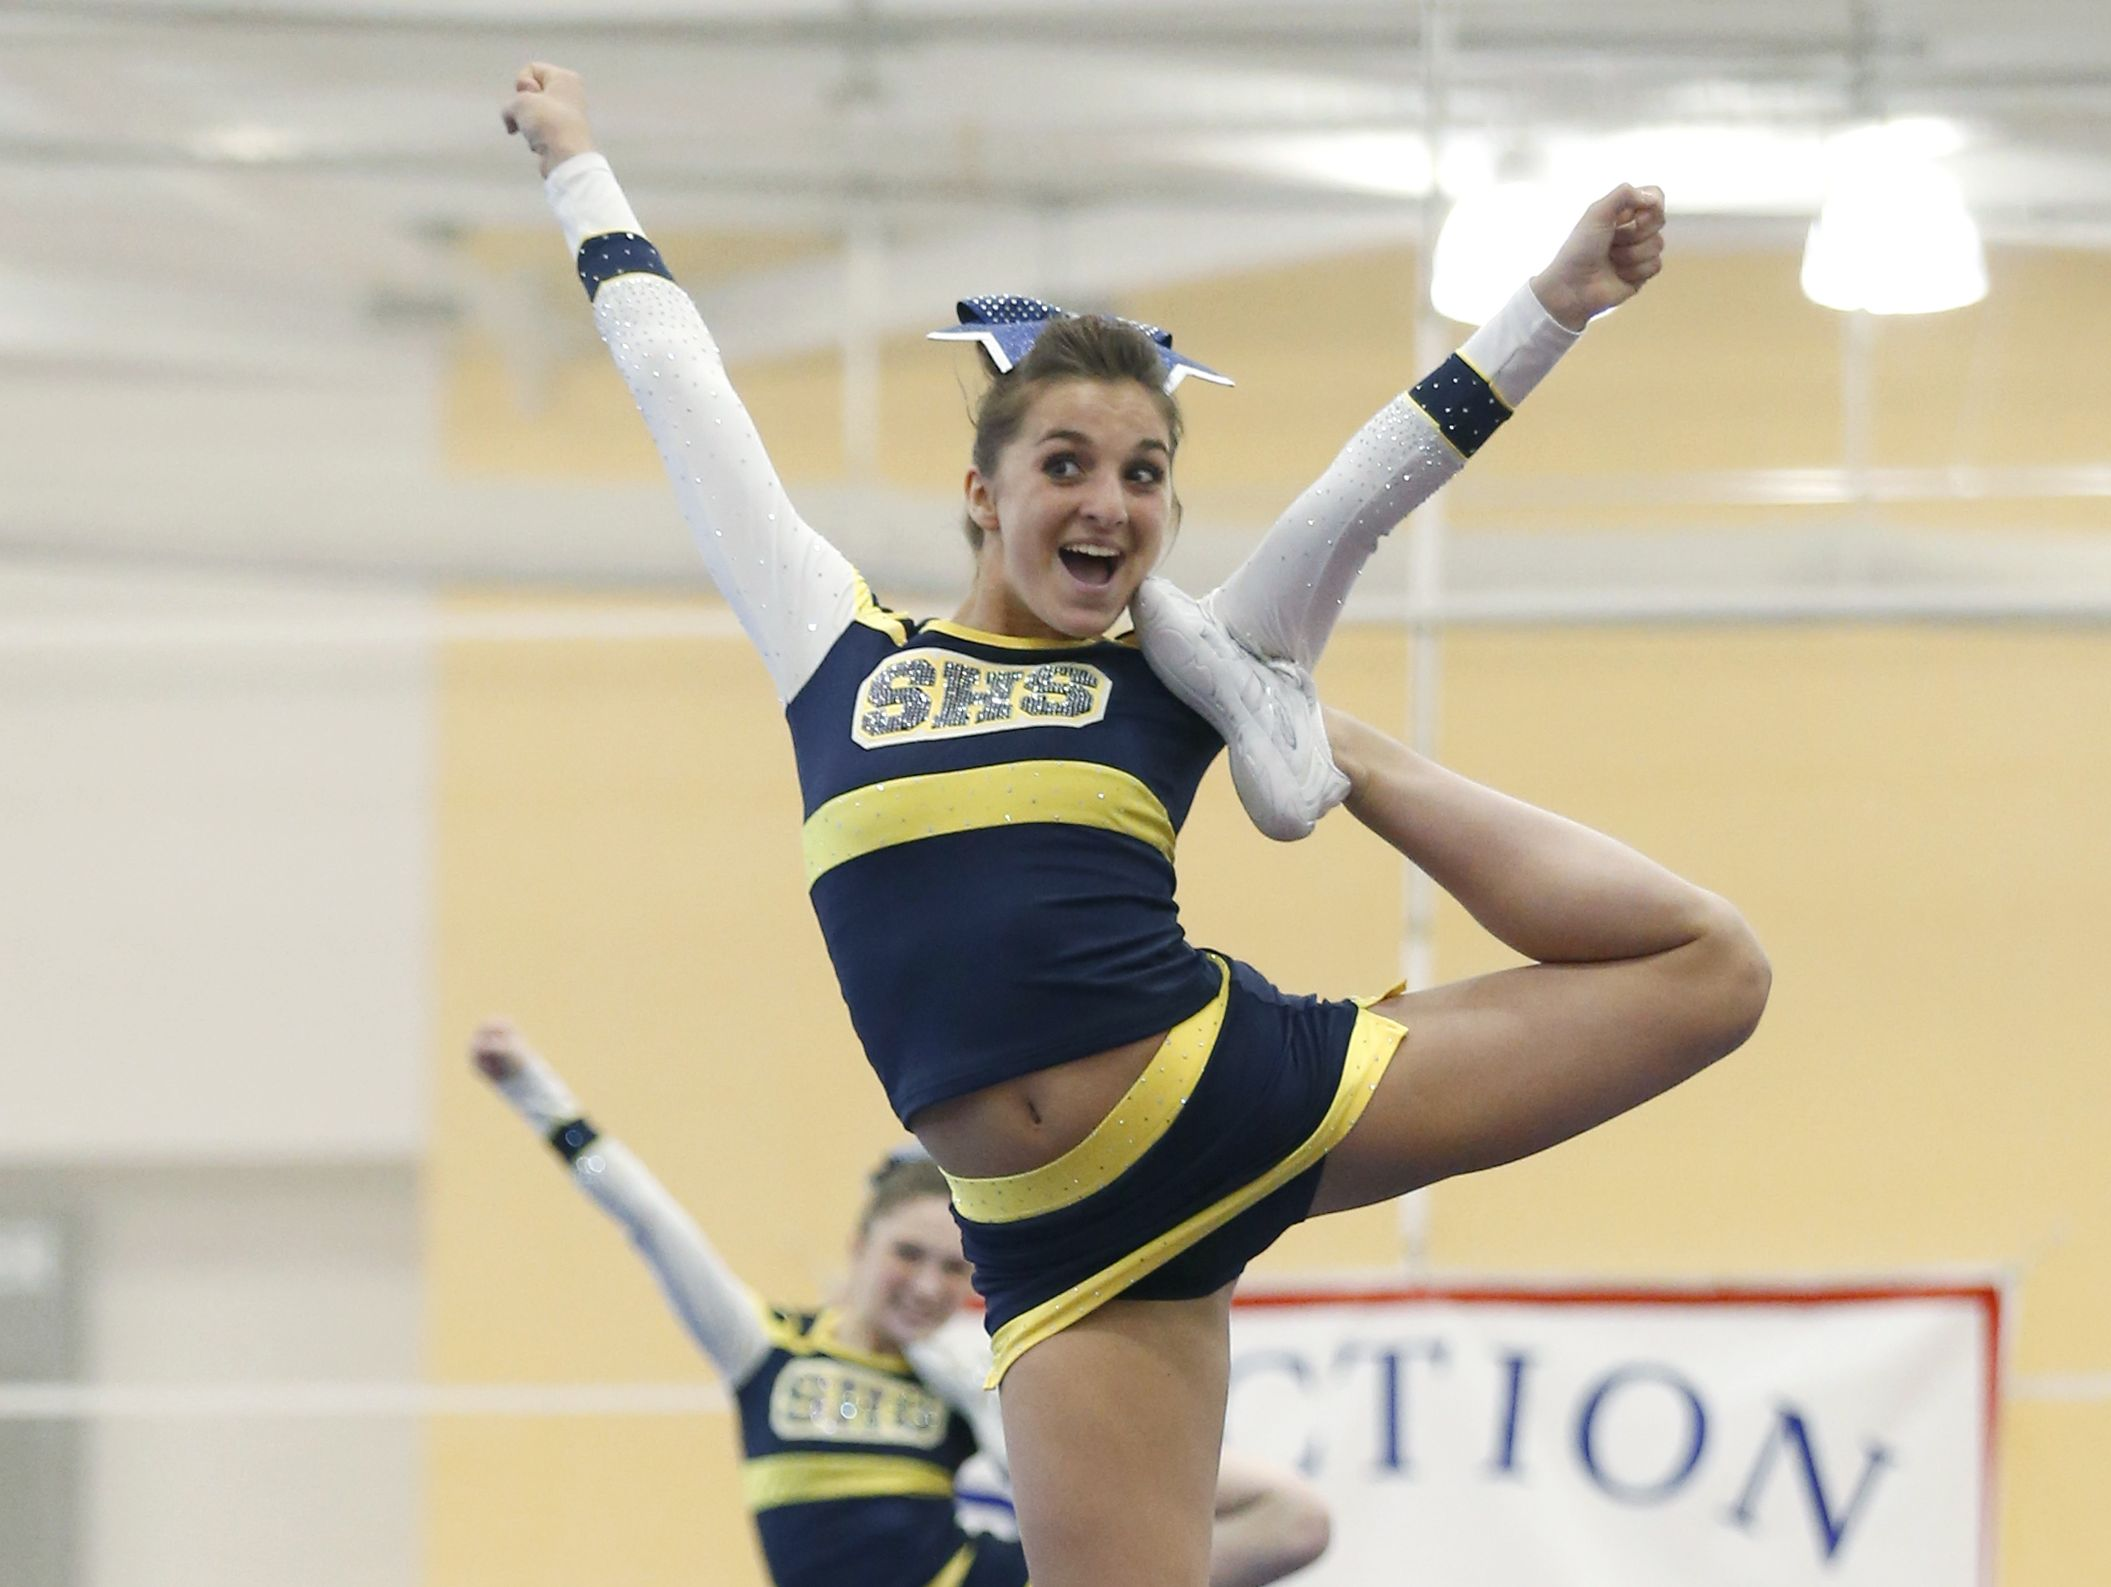 Spencerport lifts Taylor Pohleven in Division 1-Large competition.